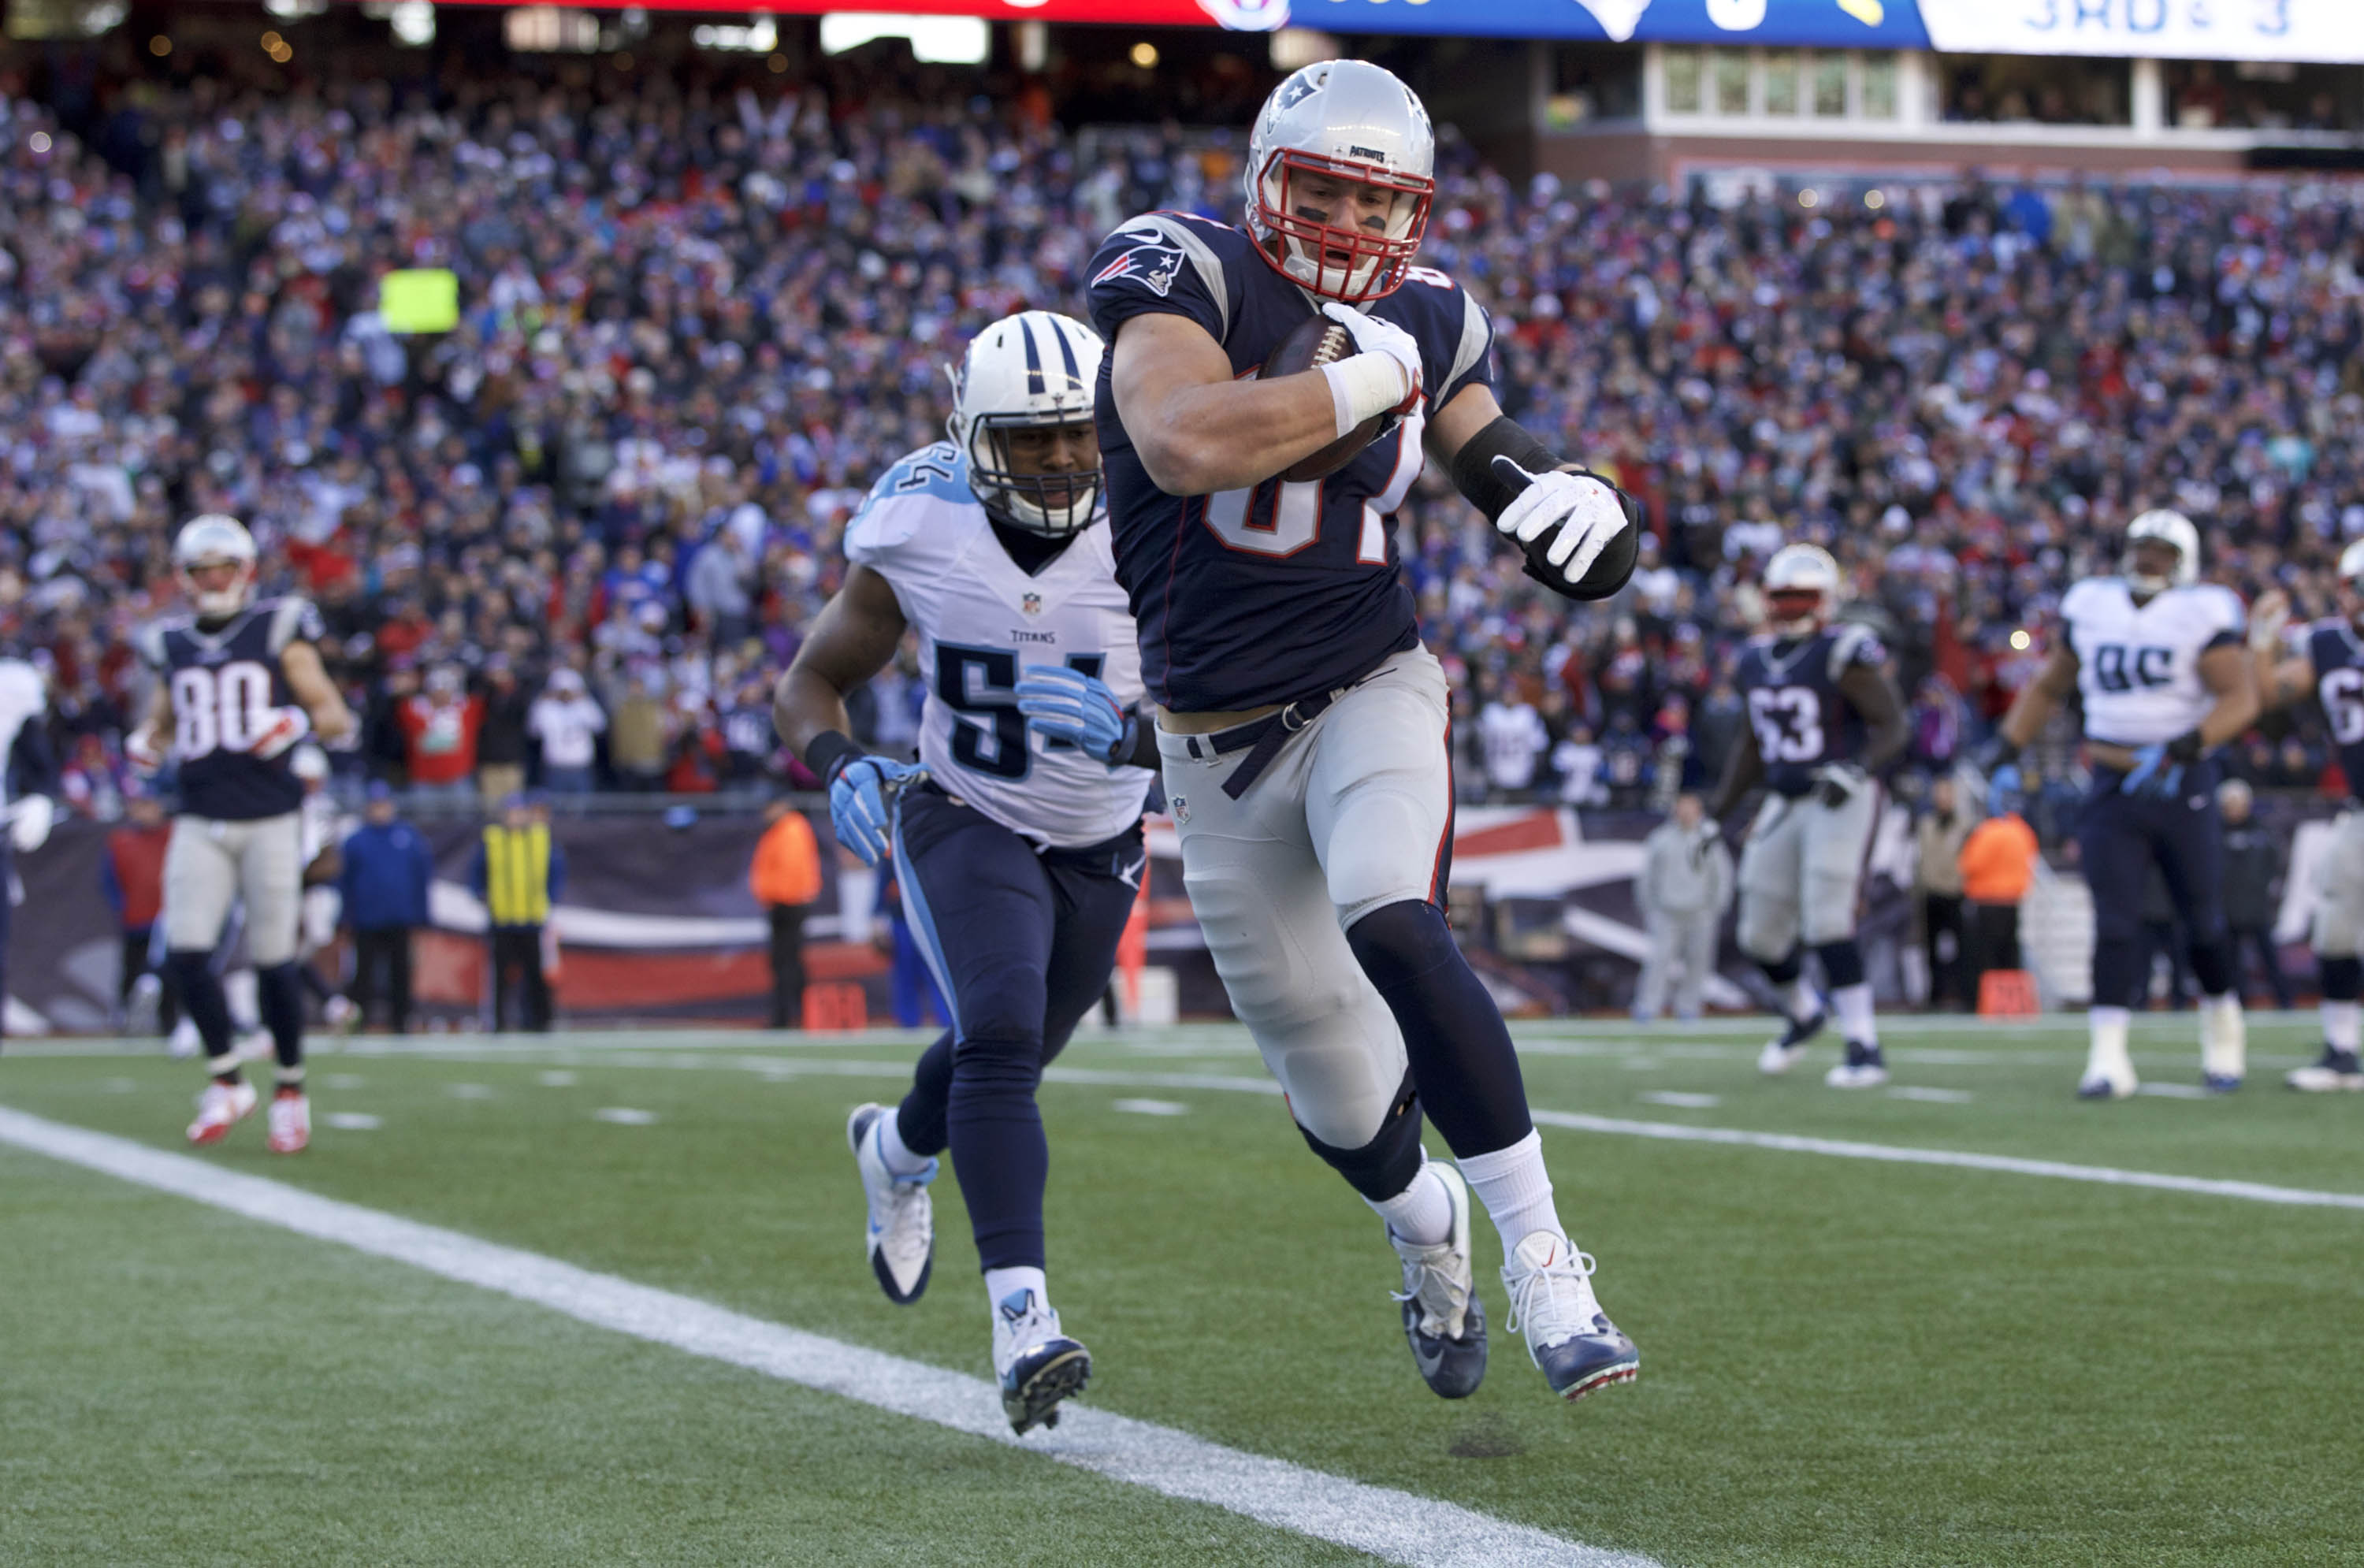 New England Patriots tight end Rob Gronkowski score a touchdown against the Tennessee Titans at Gillette Stadium in Foxborough, Mass., on Dec. 20, 2015